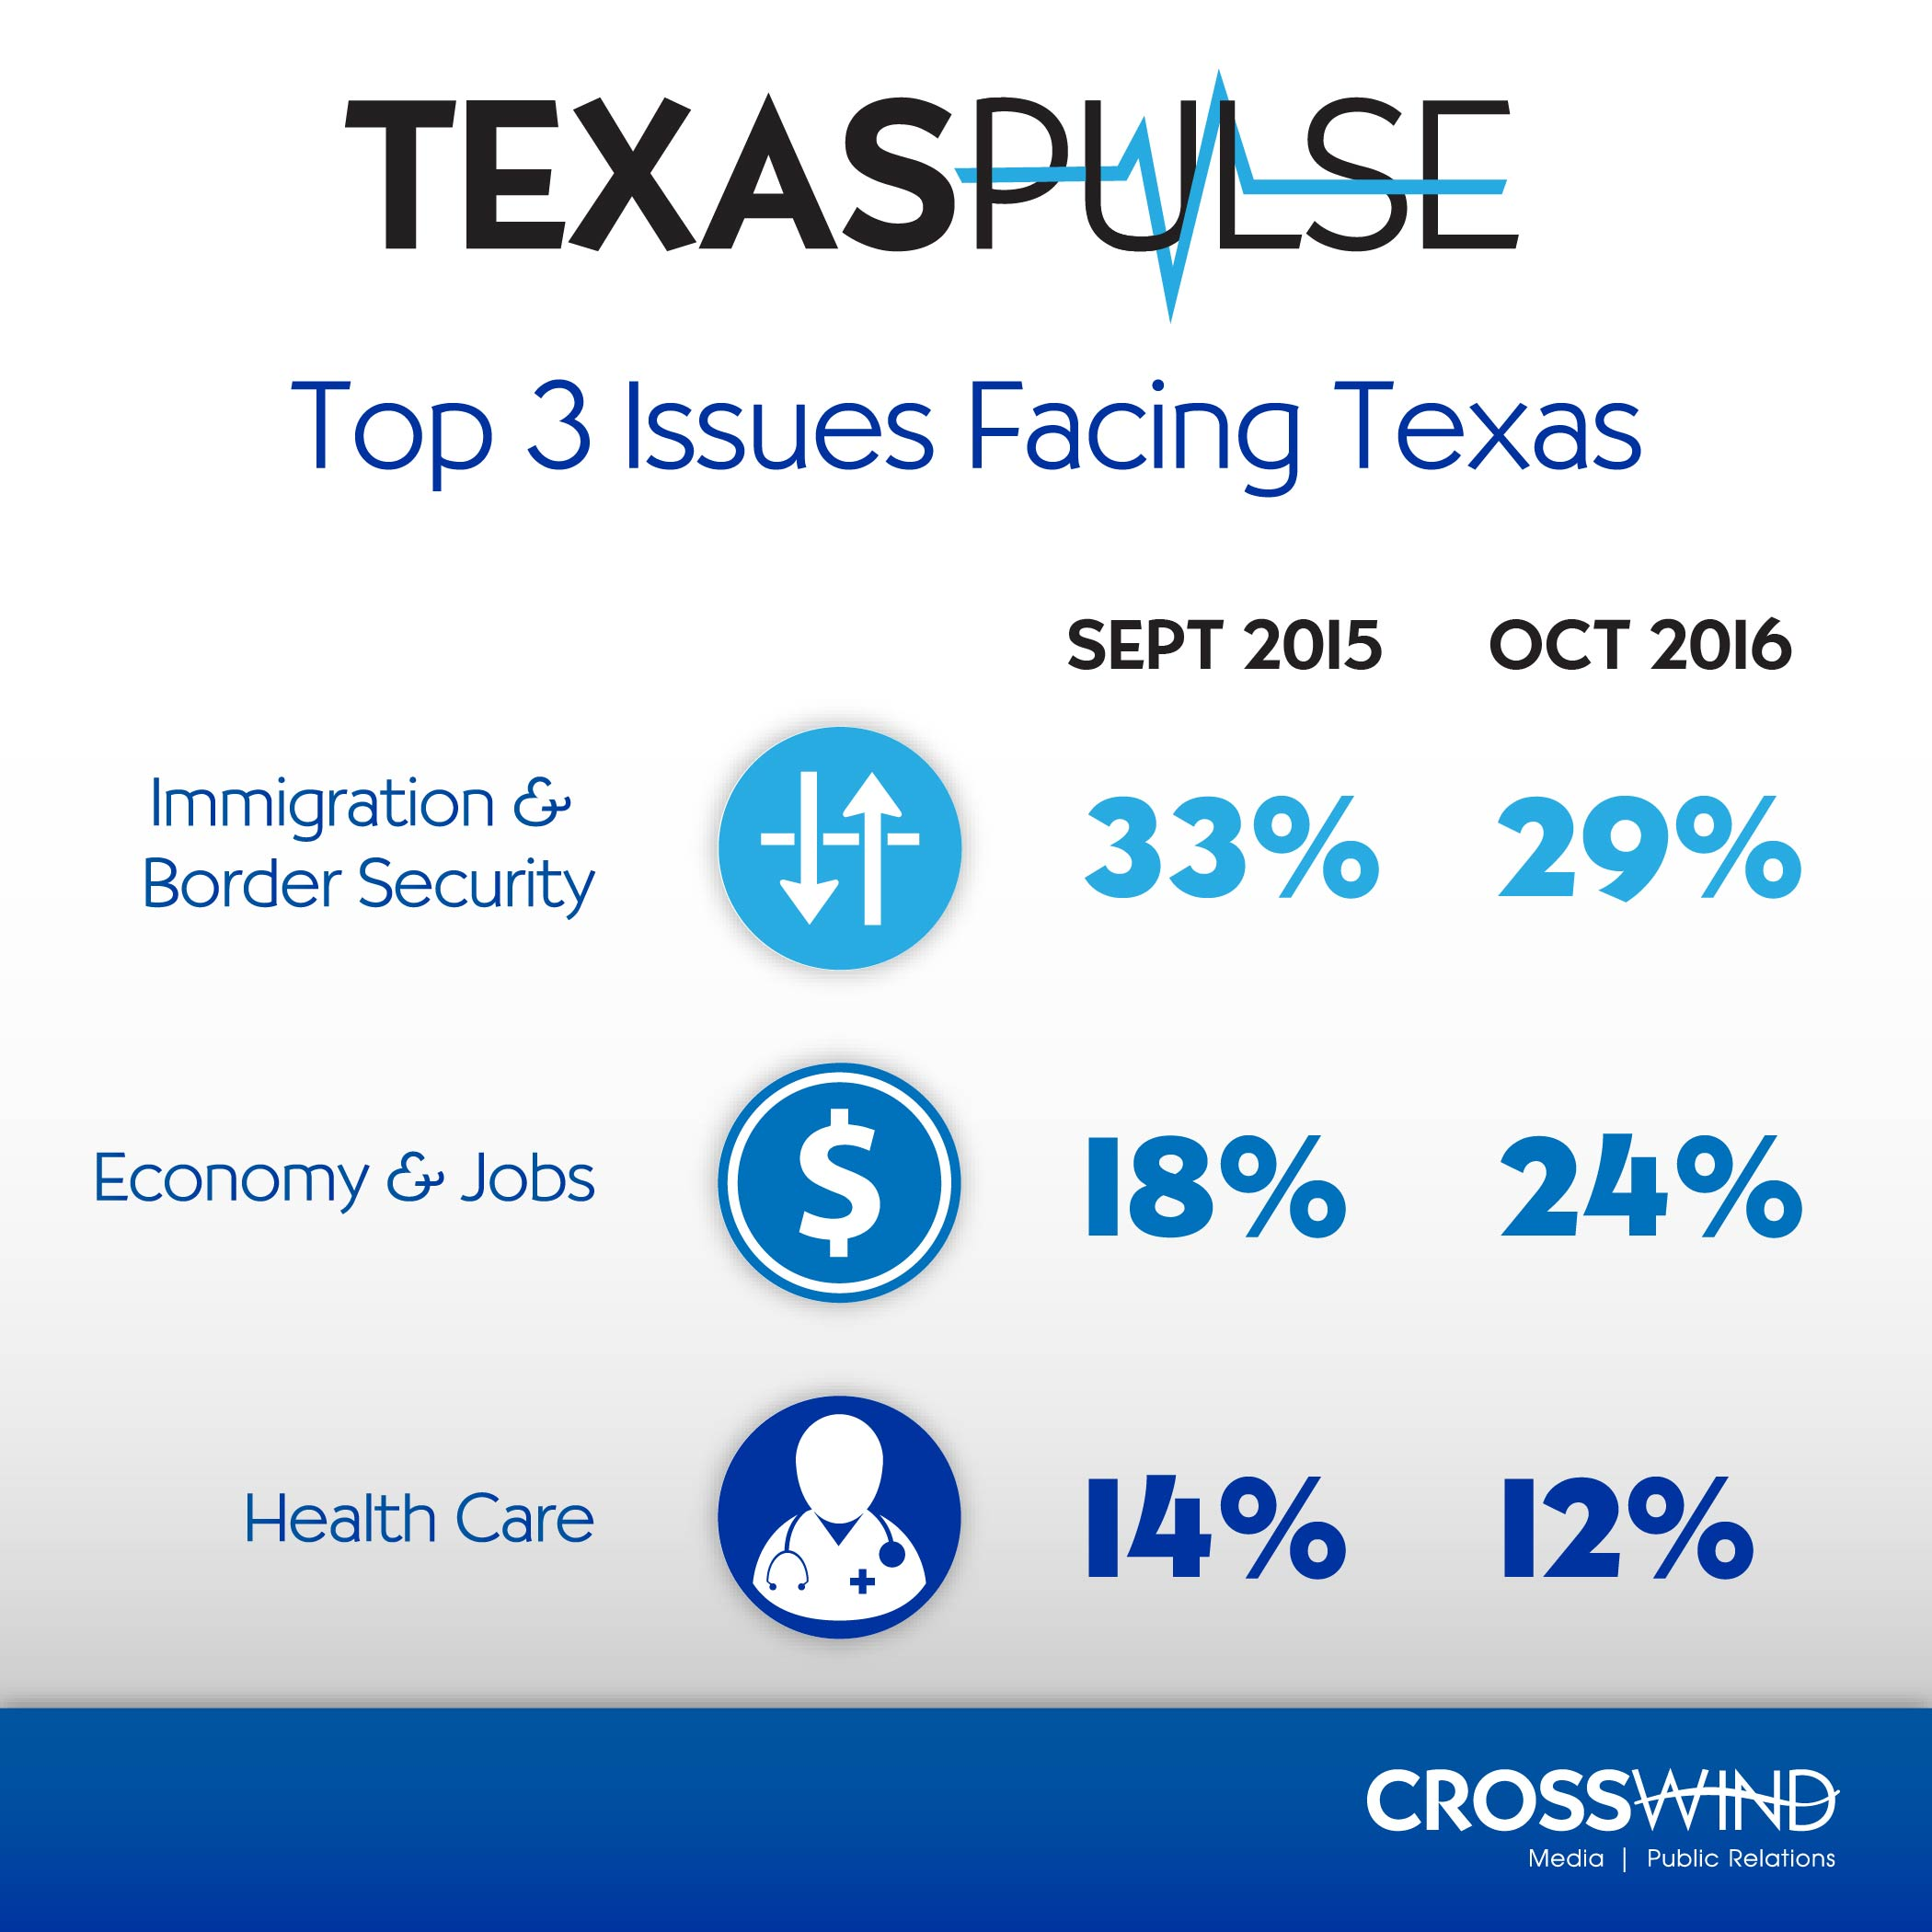 Comparison of the Sept 2015 and October 2016 Texas Pulse consumer research report conducted by Crosswind Media and Public Relations on the Top 3 issues facing Texas. Immigration, Economy, and Health Care.